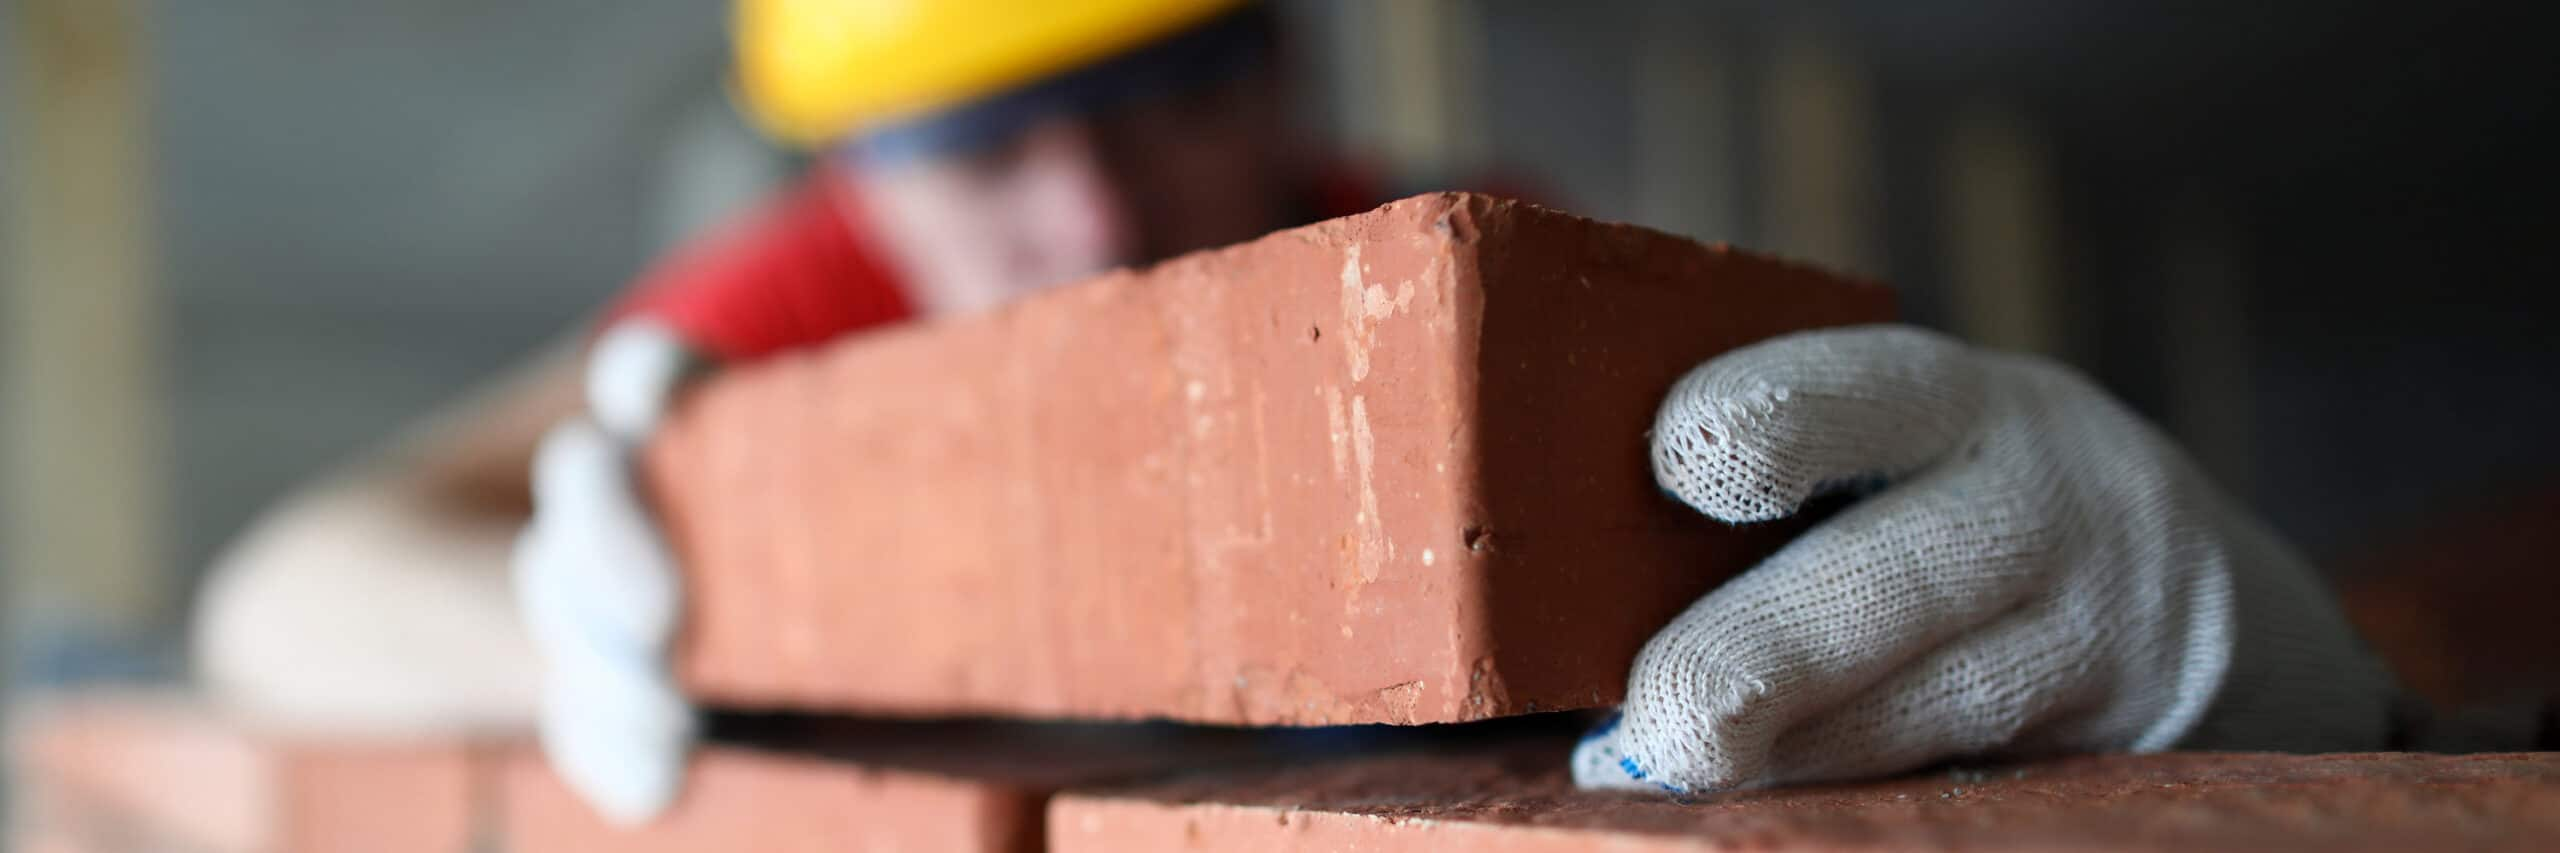 construction worker laying bricks